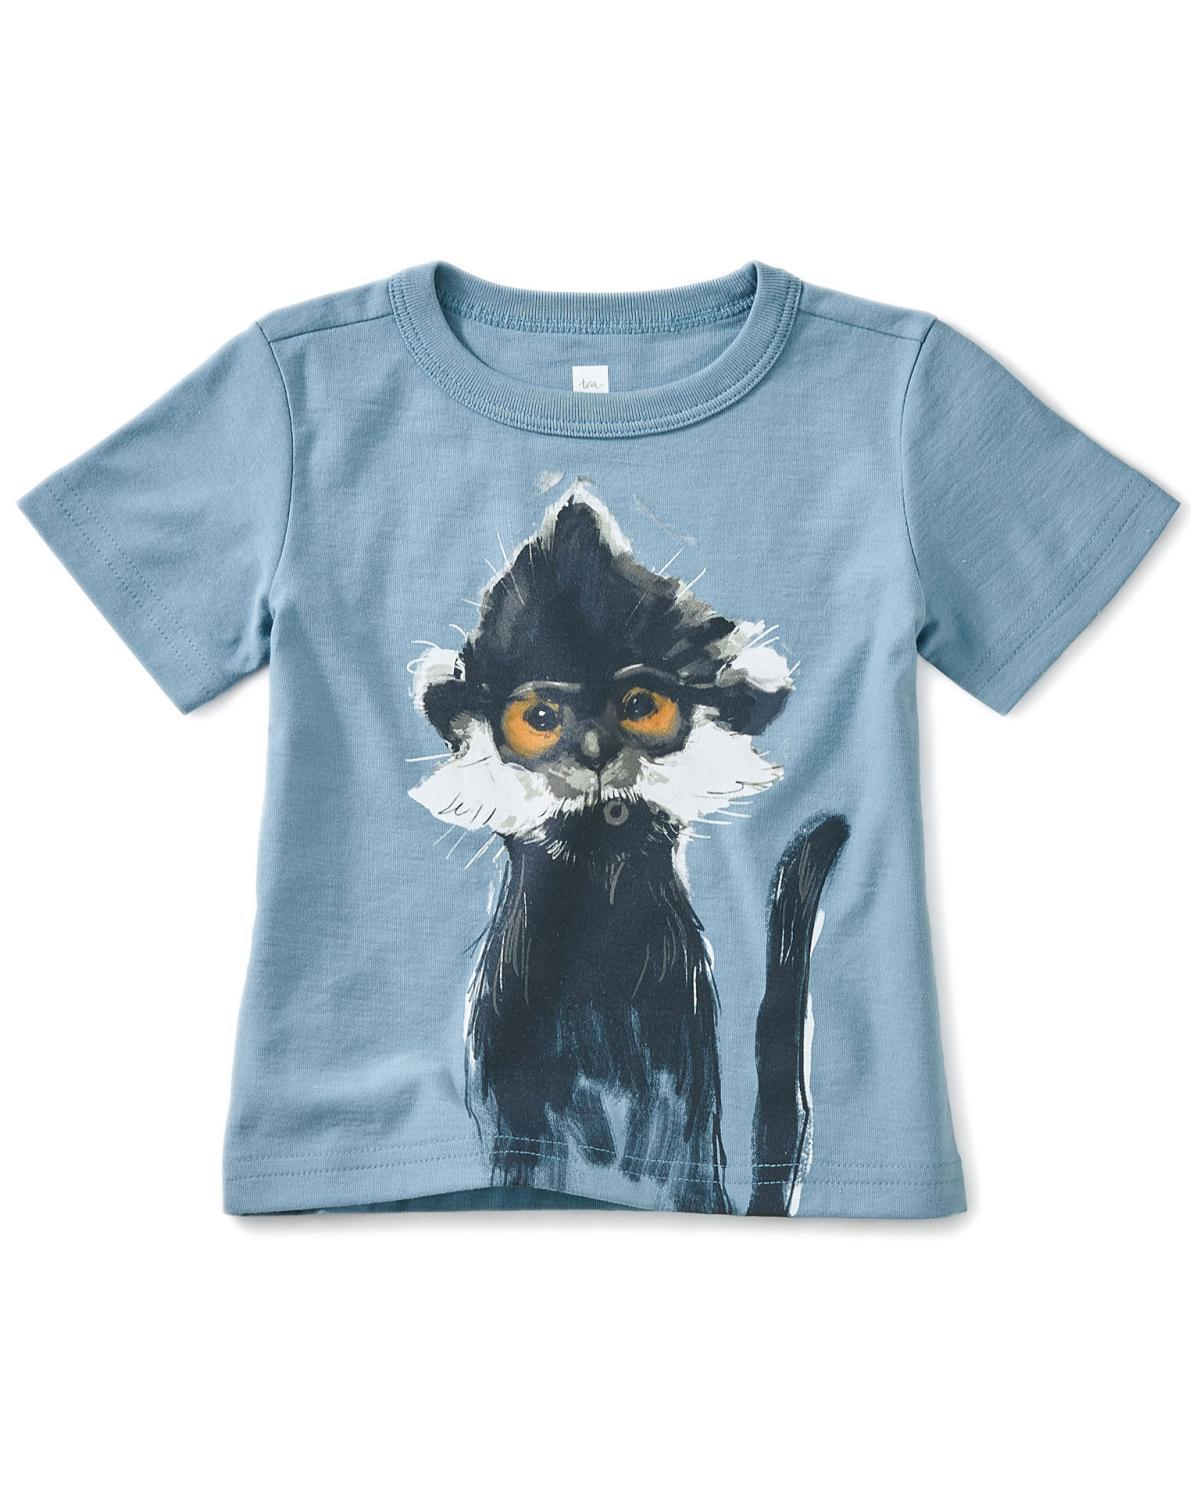 Little tea collection baby boy 12-18 langur baby graphic tee